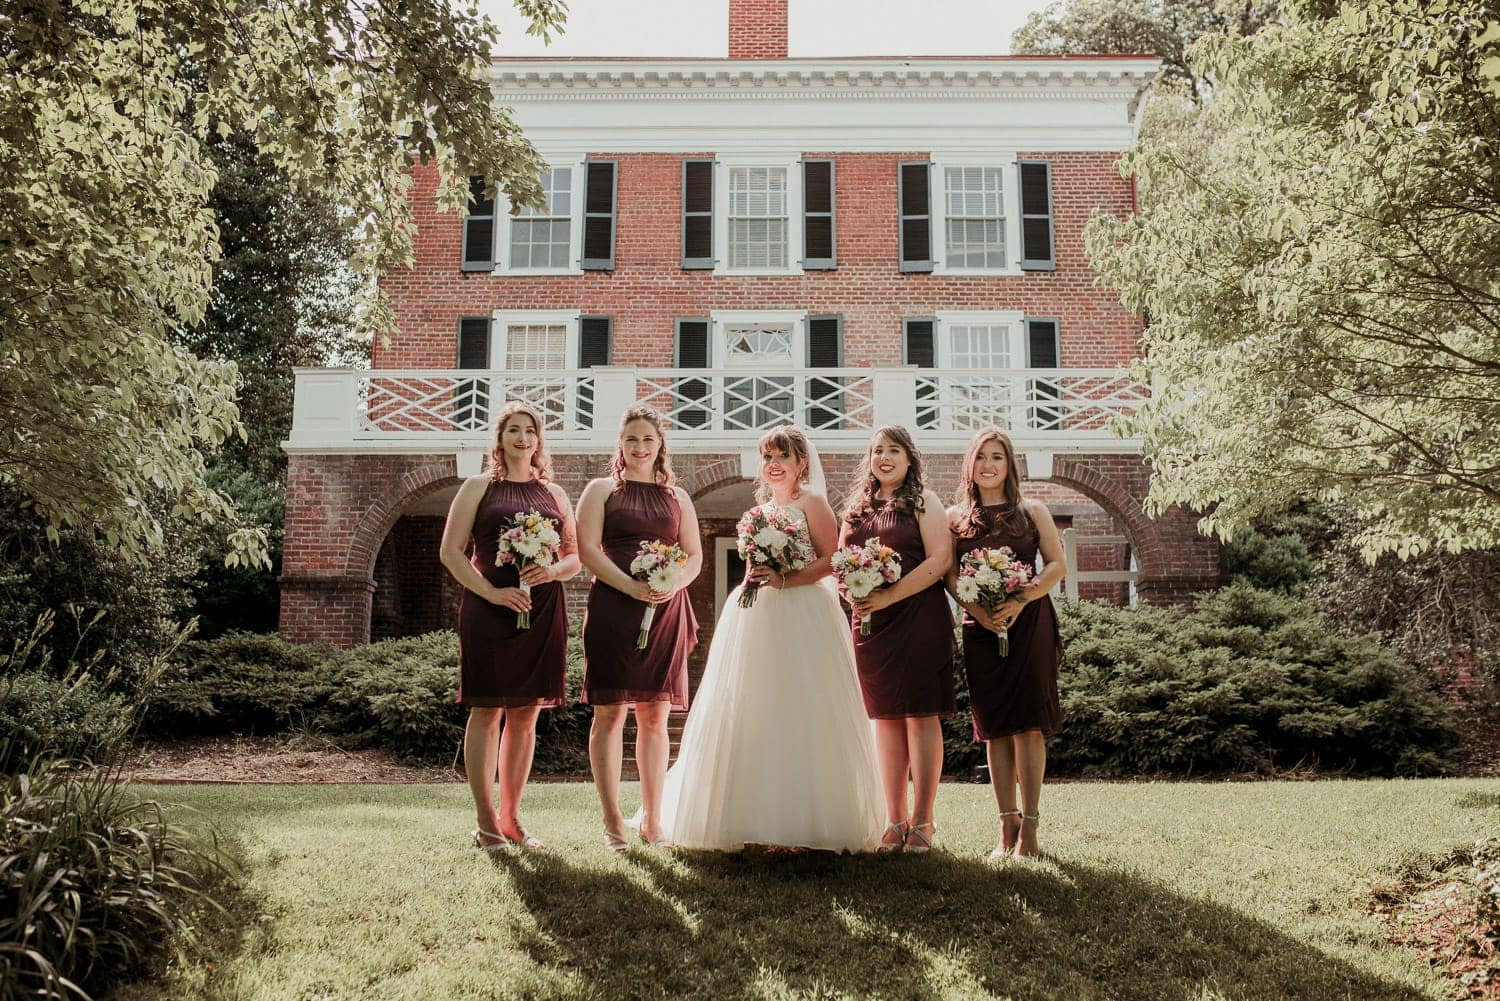 Bridal party in front of a two story brick building at Virginia state university